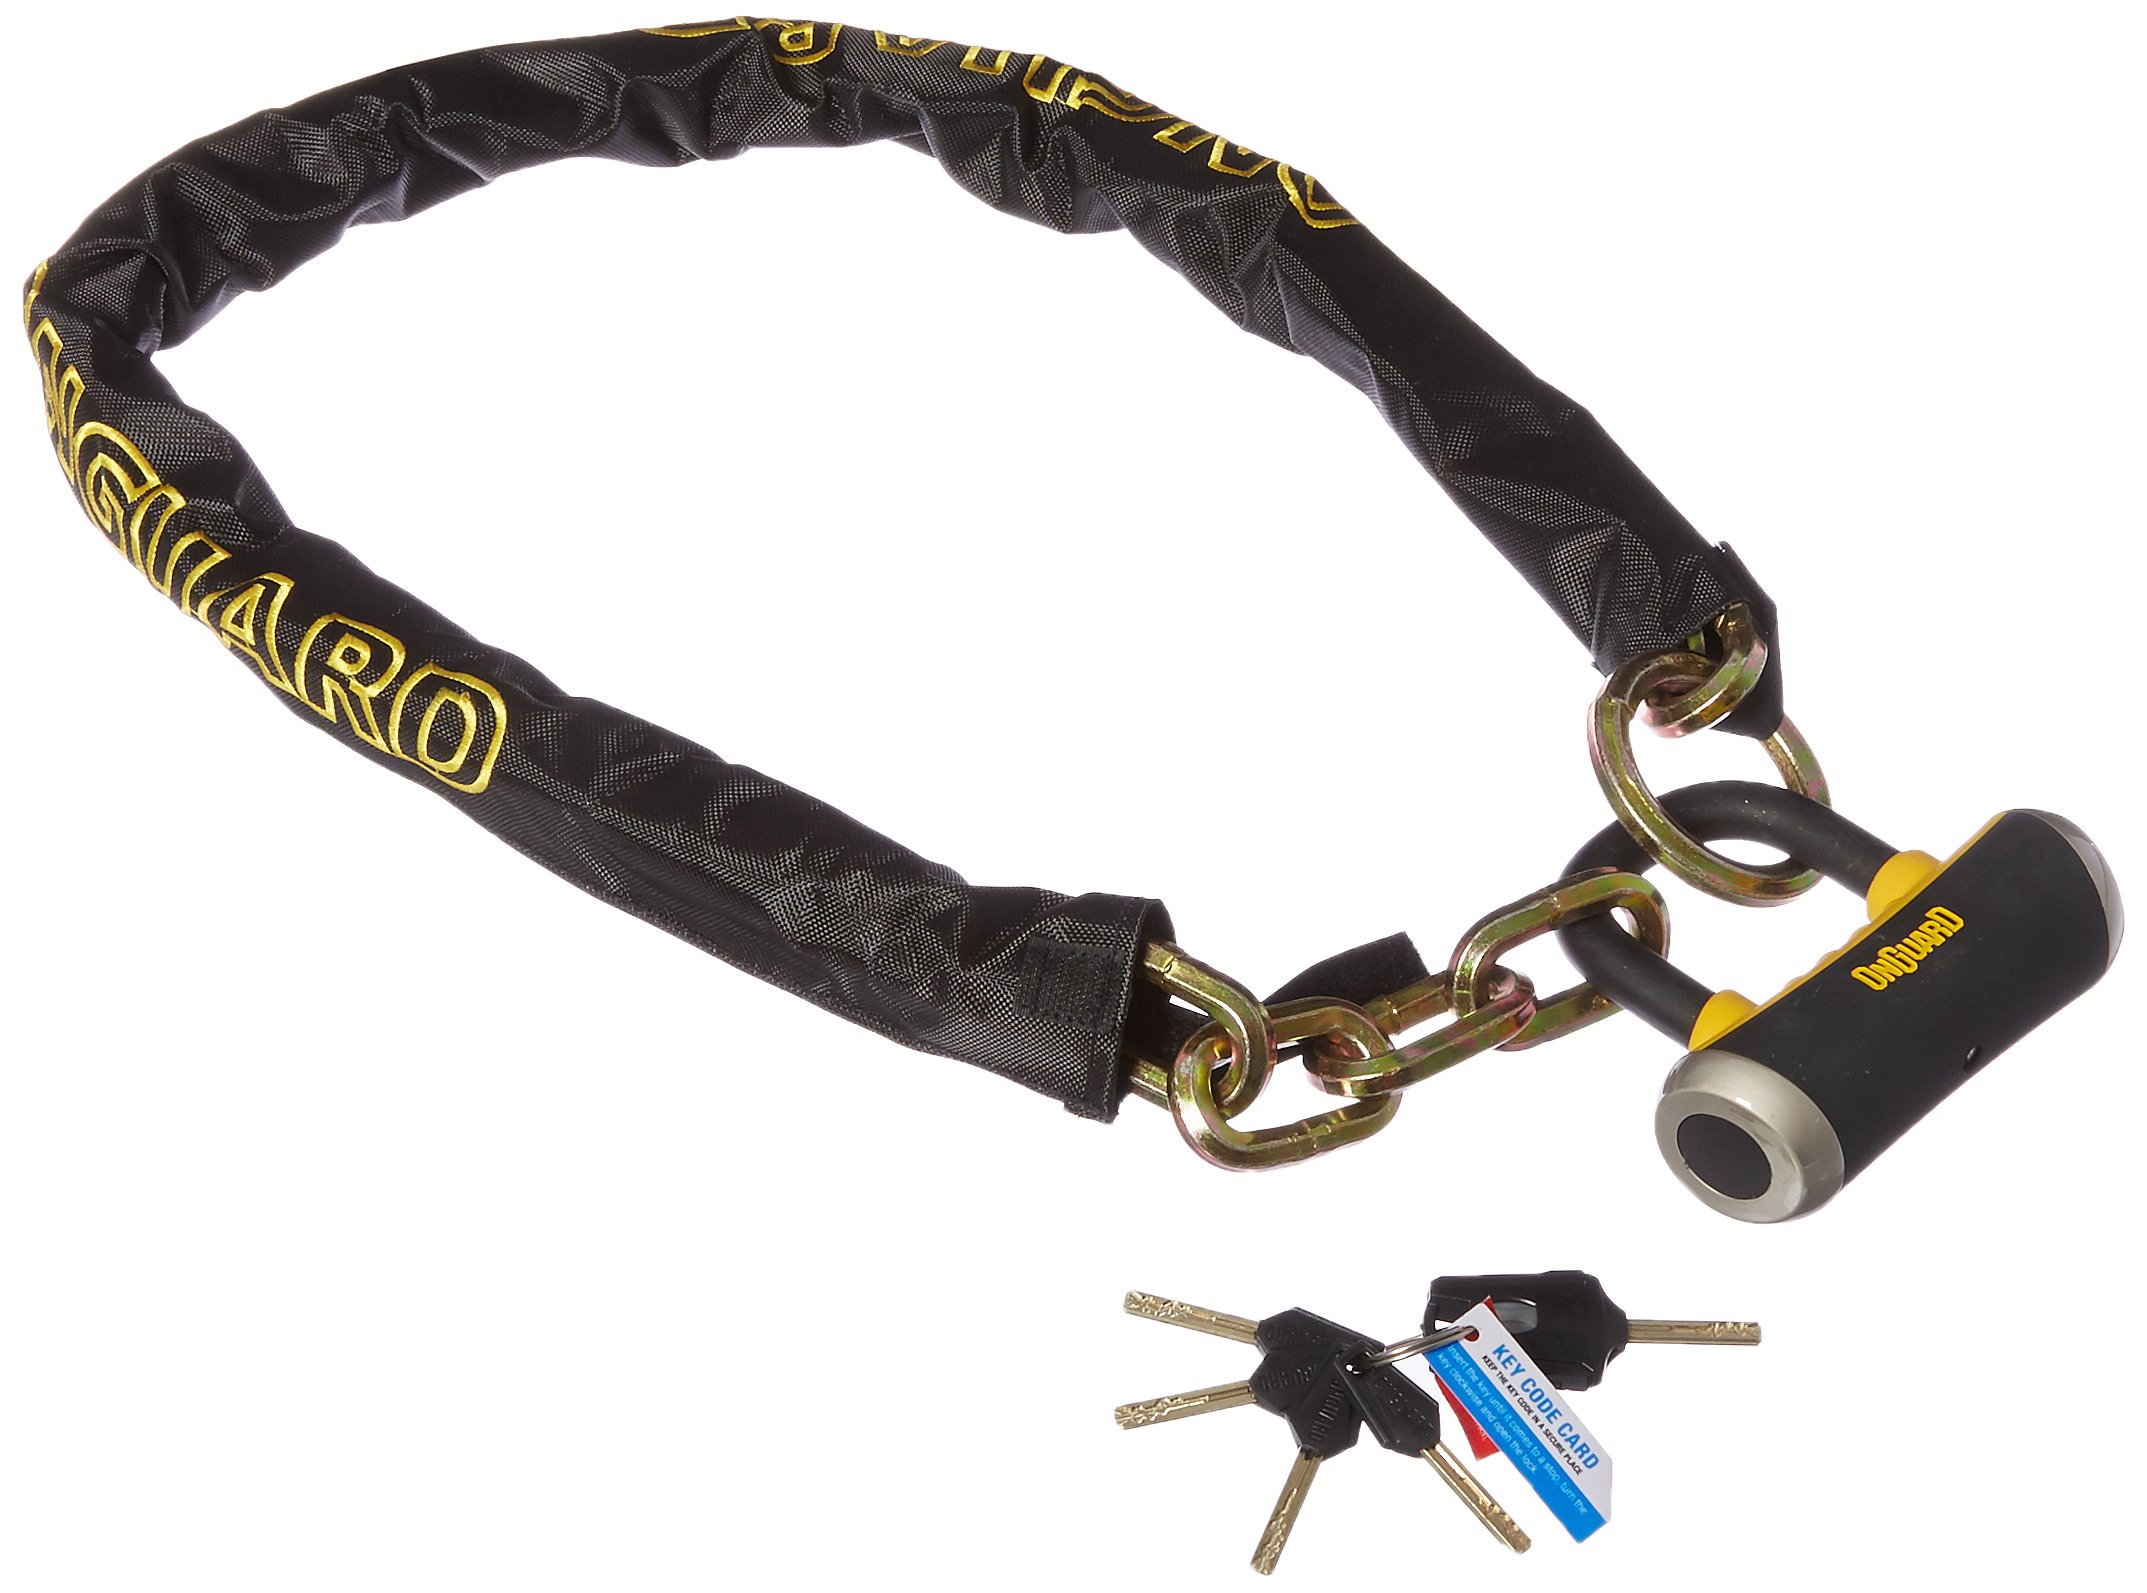 ONGUARD MASTIFF LOOP CHAIN 10MM 4'4''(4FT 4 INCHES)